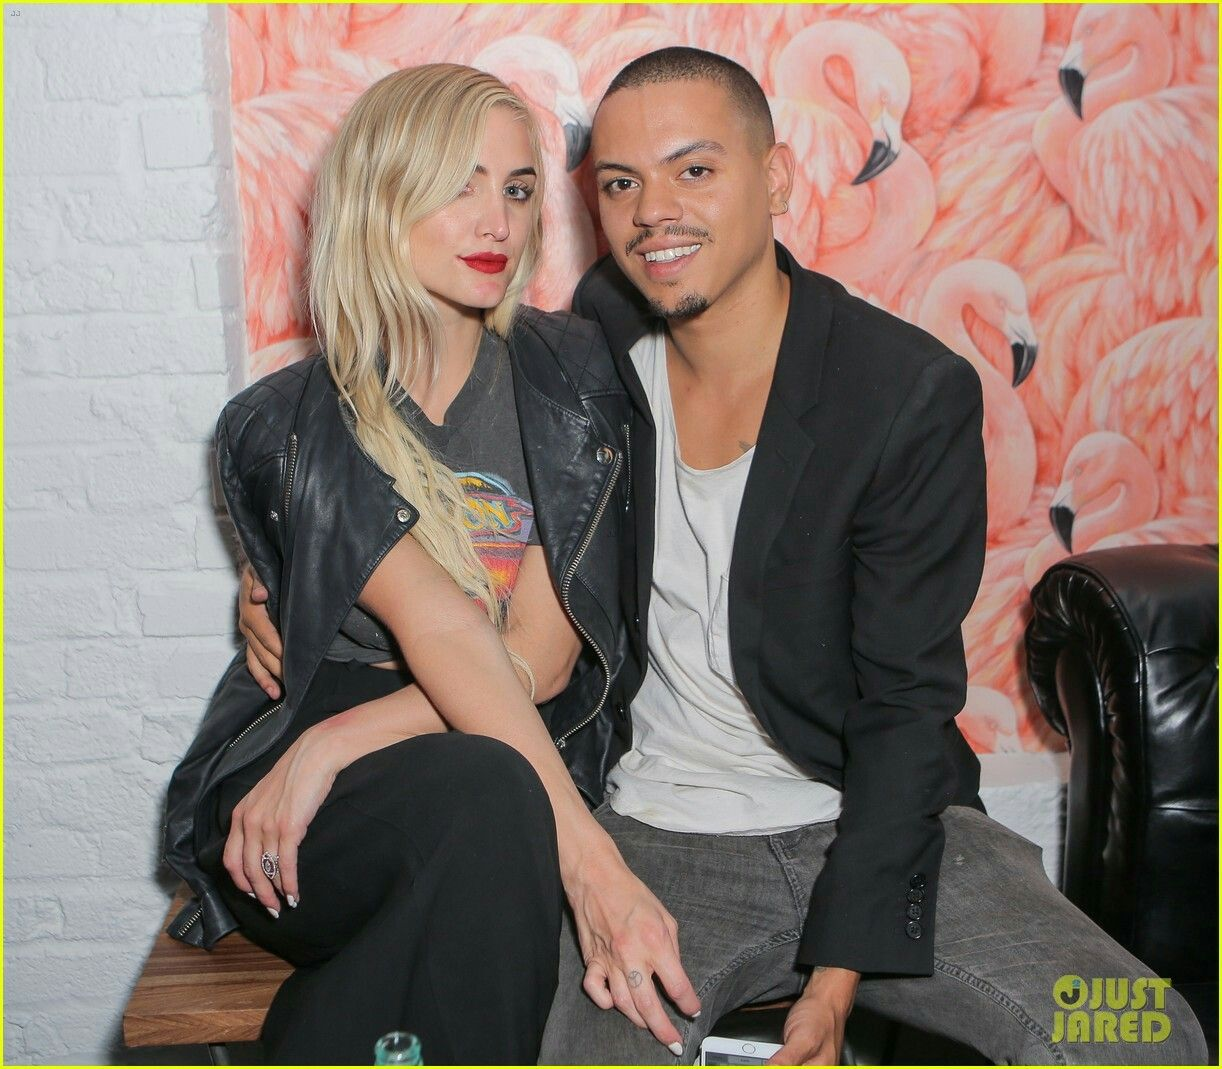 pictures Ashlee simpson ross cleavage